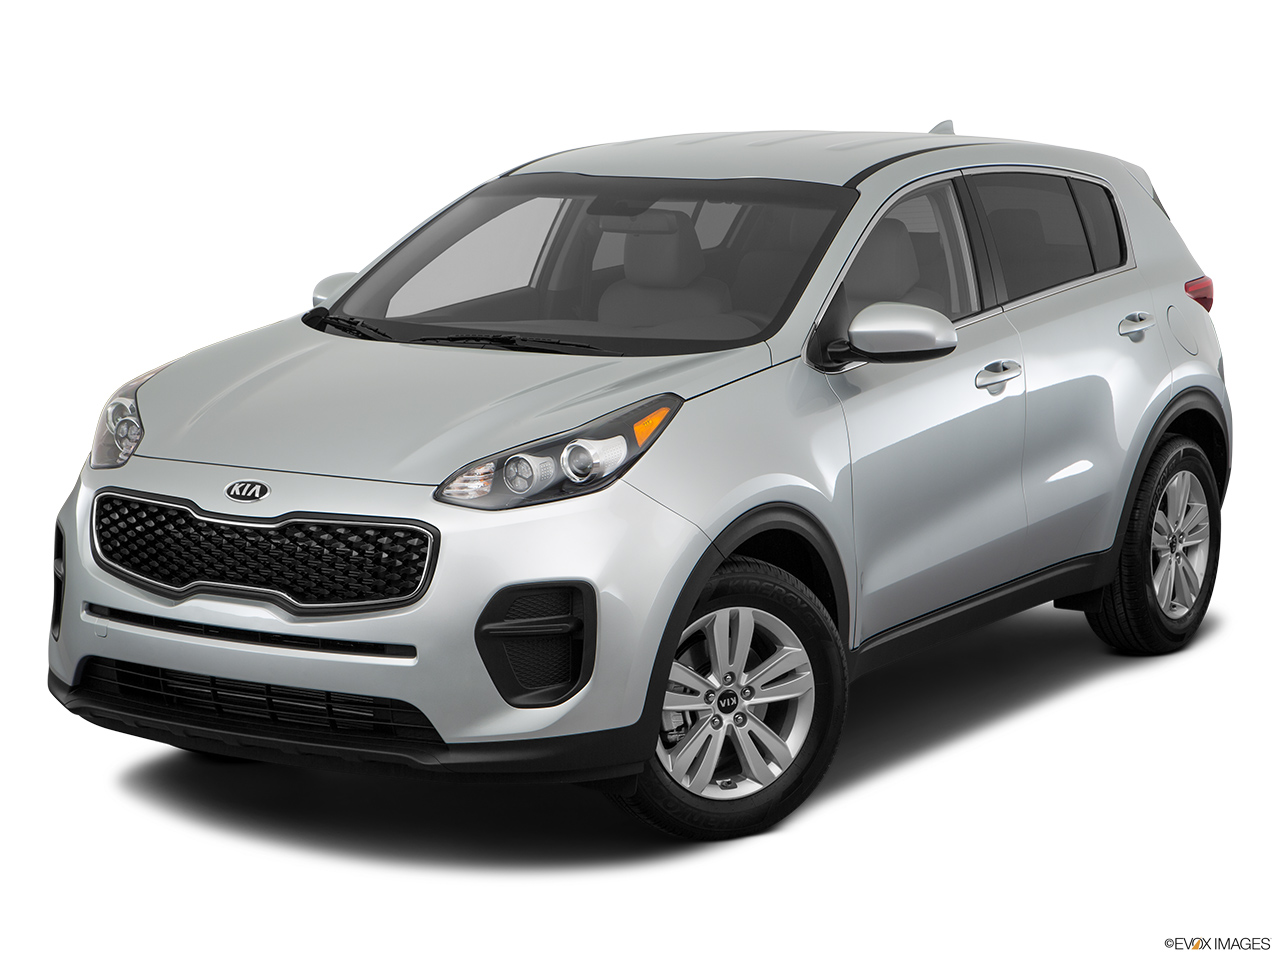 2018 kia sportage prices in uae gulf specs reviews for dubai abu dhabi and sharjah yallamotor. Black Bedroom Furniture Sets. Home Design Ideas